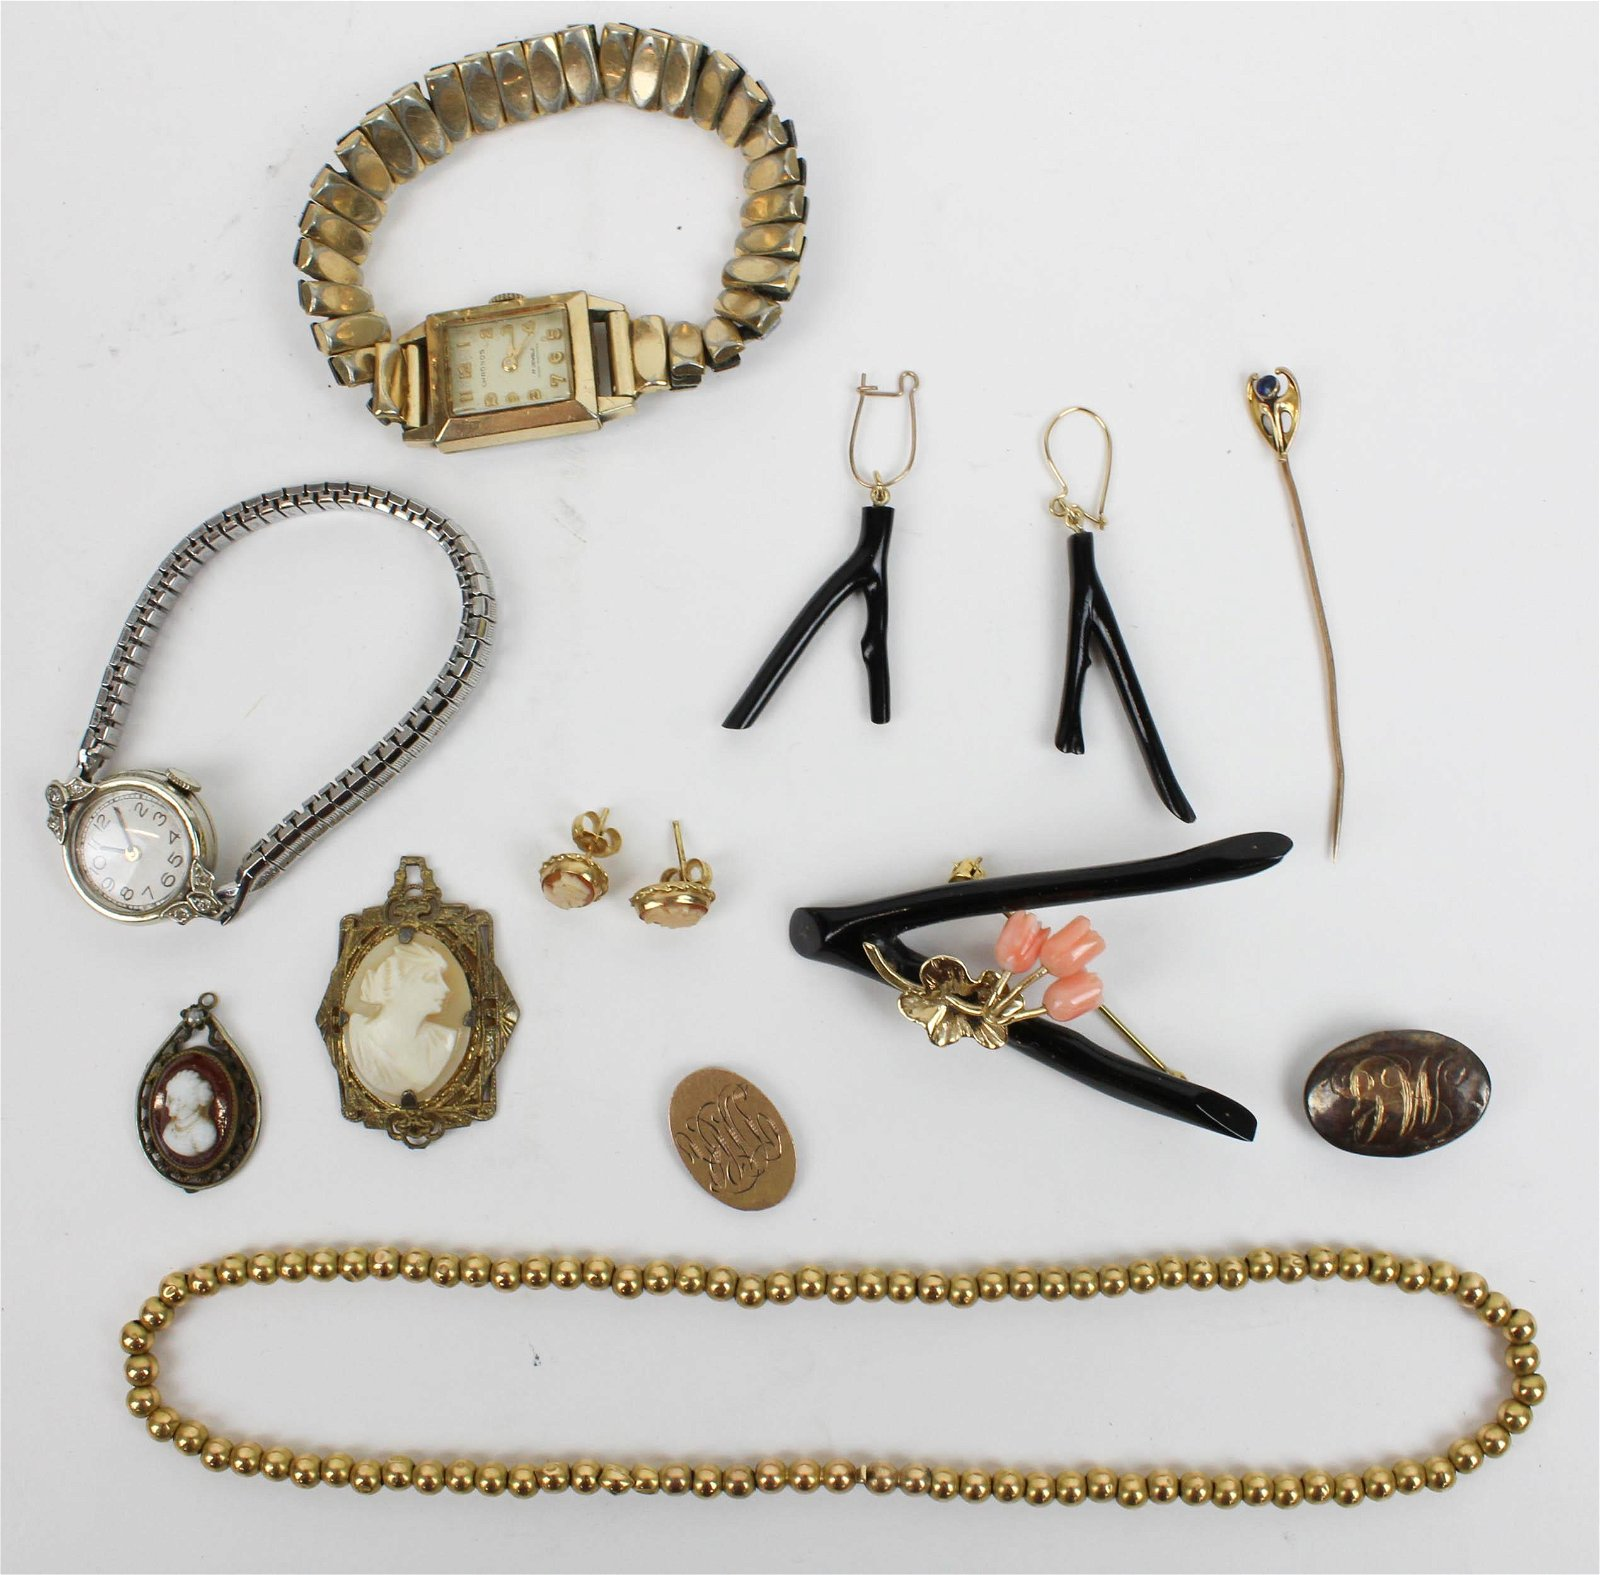 Group of Victorian gold jewelry